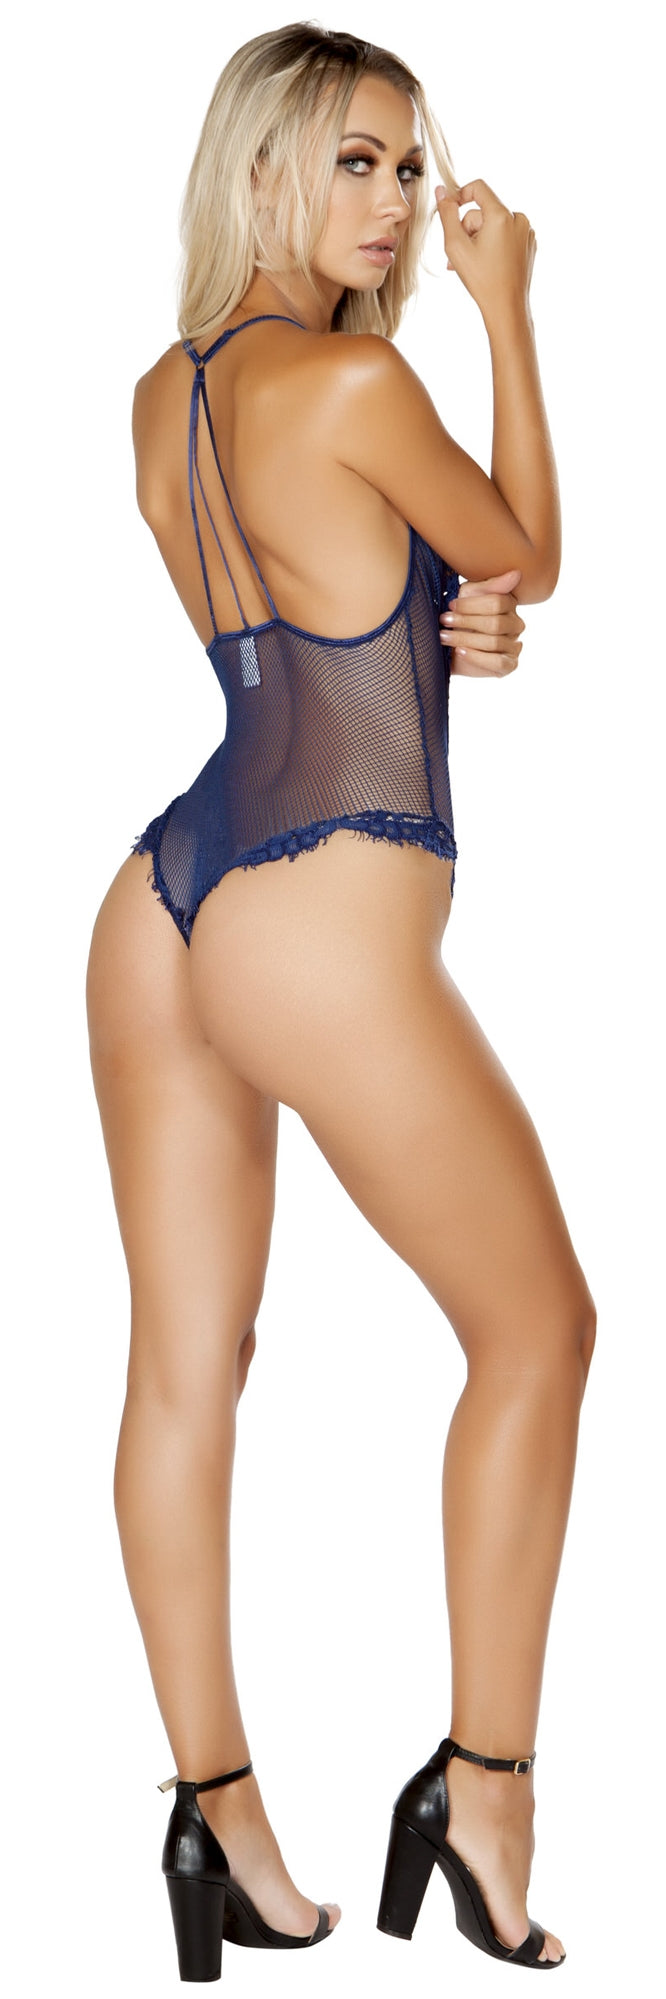 RMLI243 Sheer teddy blue back